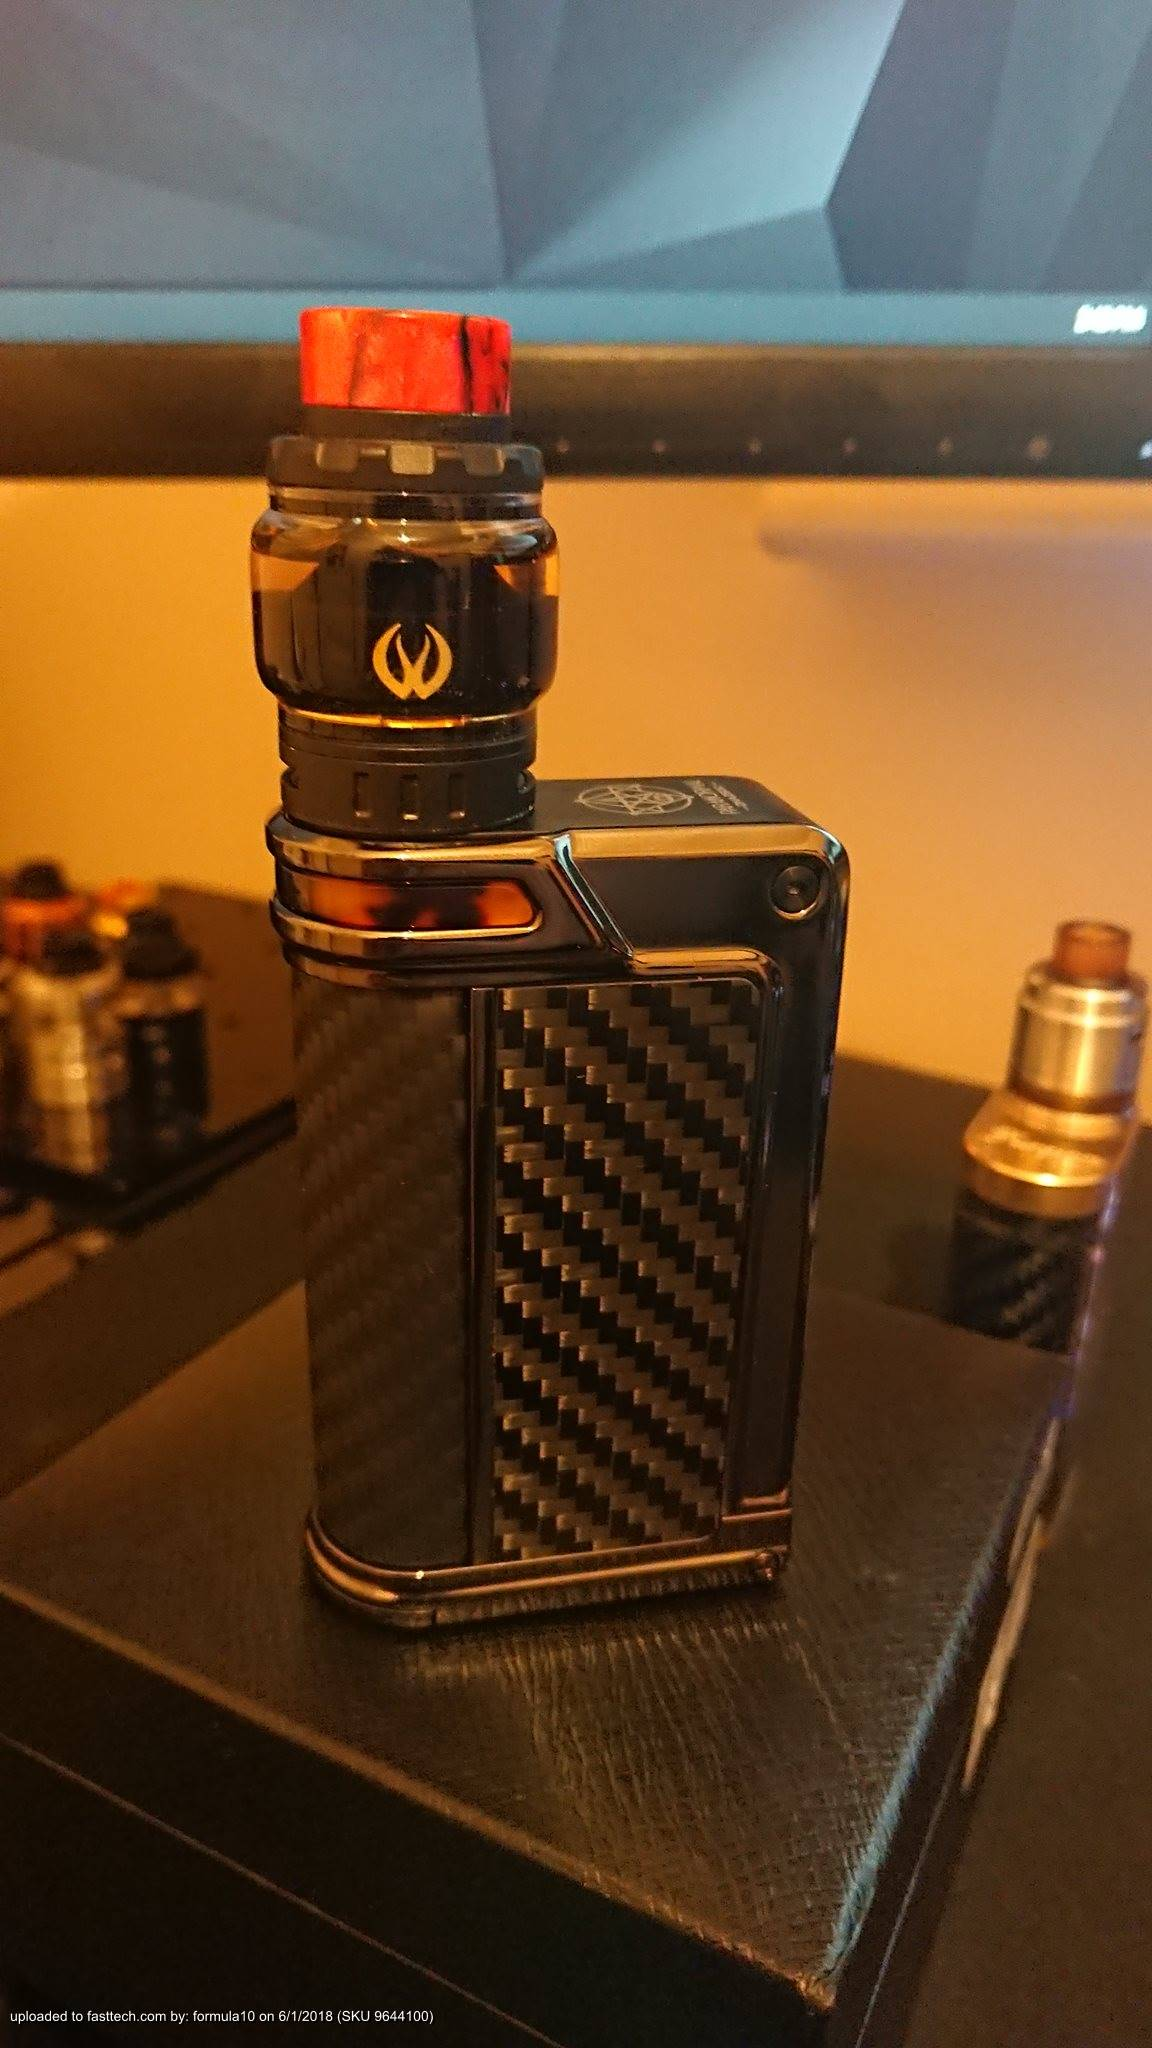 250C Paranormal with Kylin Mini RTA - Authentic Lost Vape